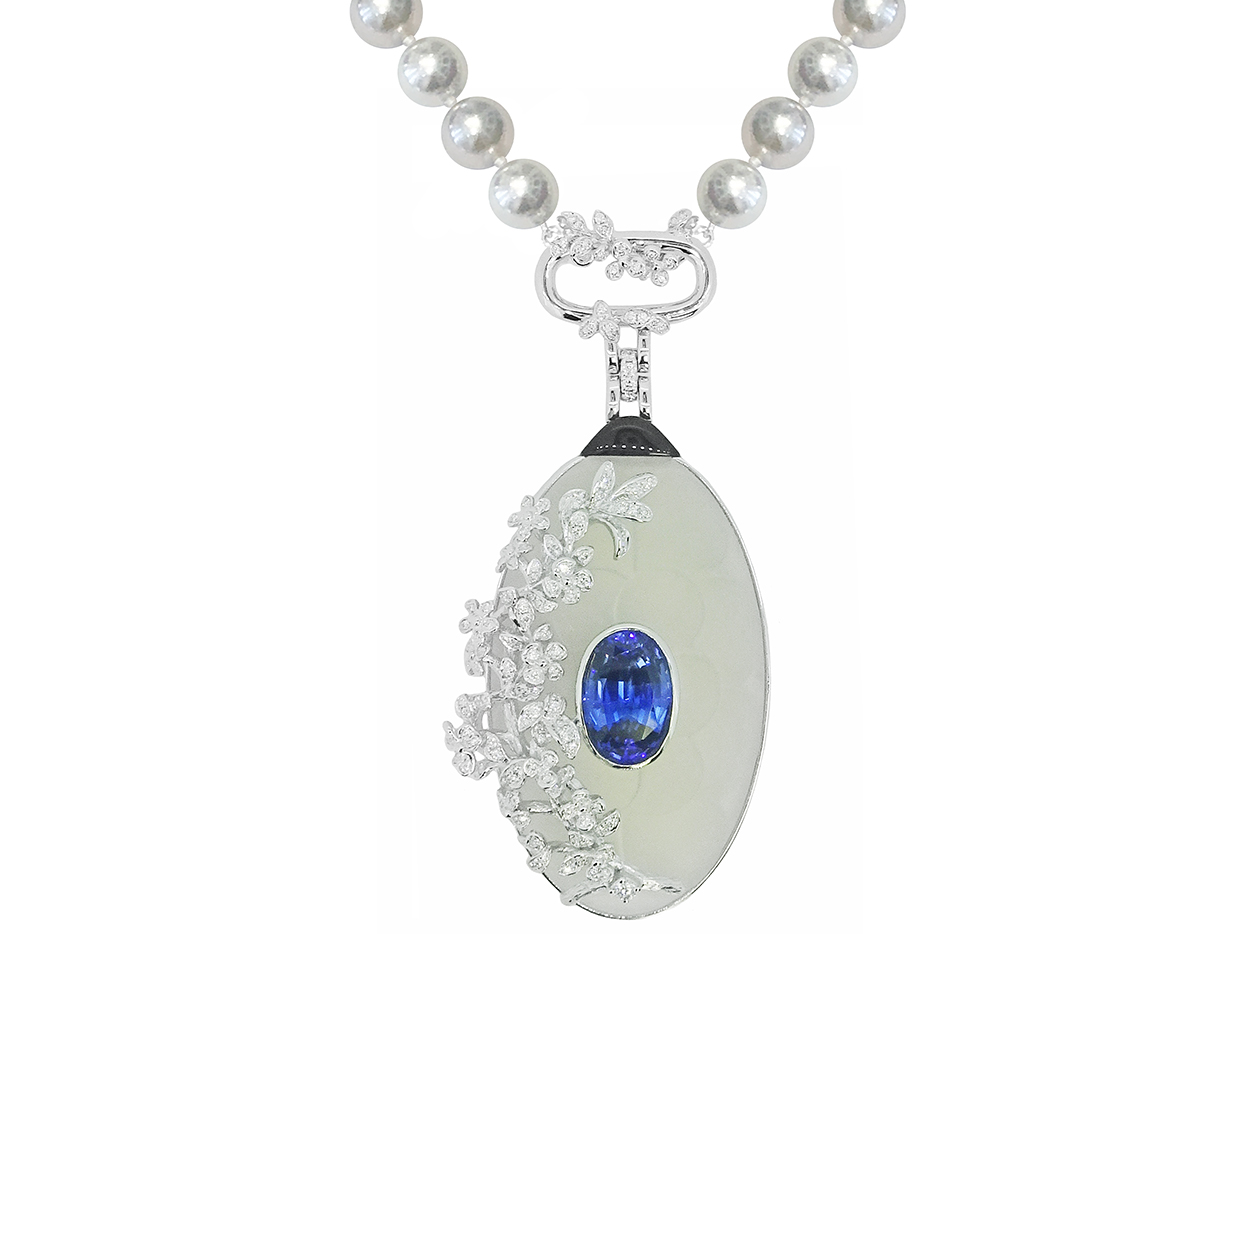 The Georgian Locket by Simone in 18K White Gold with Tanzanite, Diamonds, Blue Pearls, White Quartz and Black Onyx ($46,325).